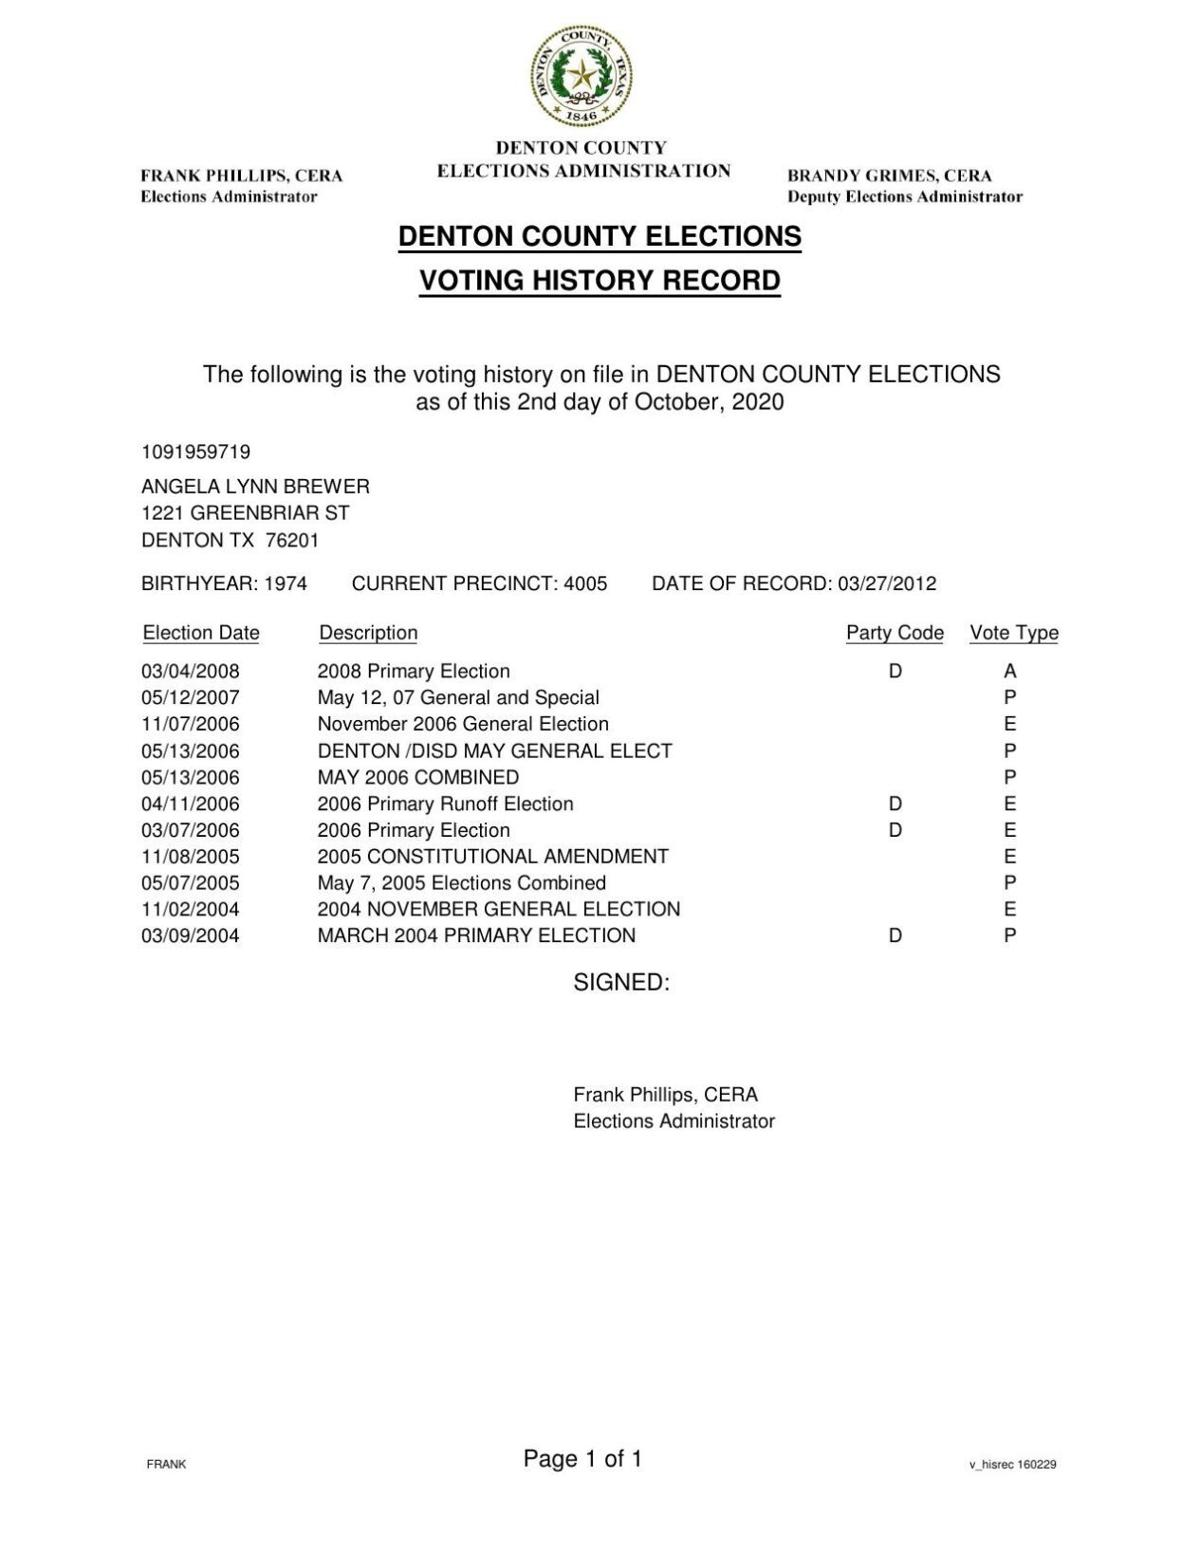 Angela Brewer Voting History 1